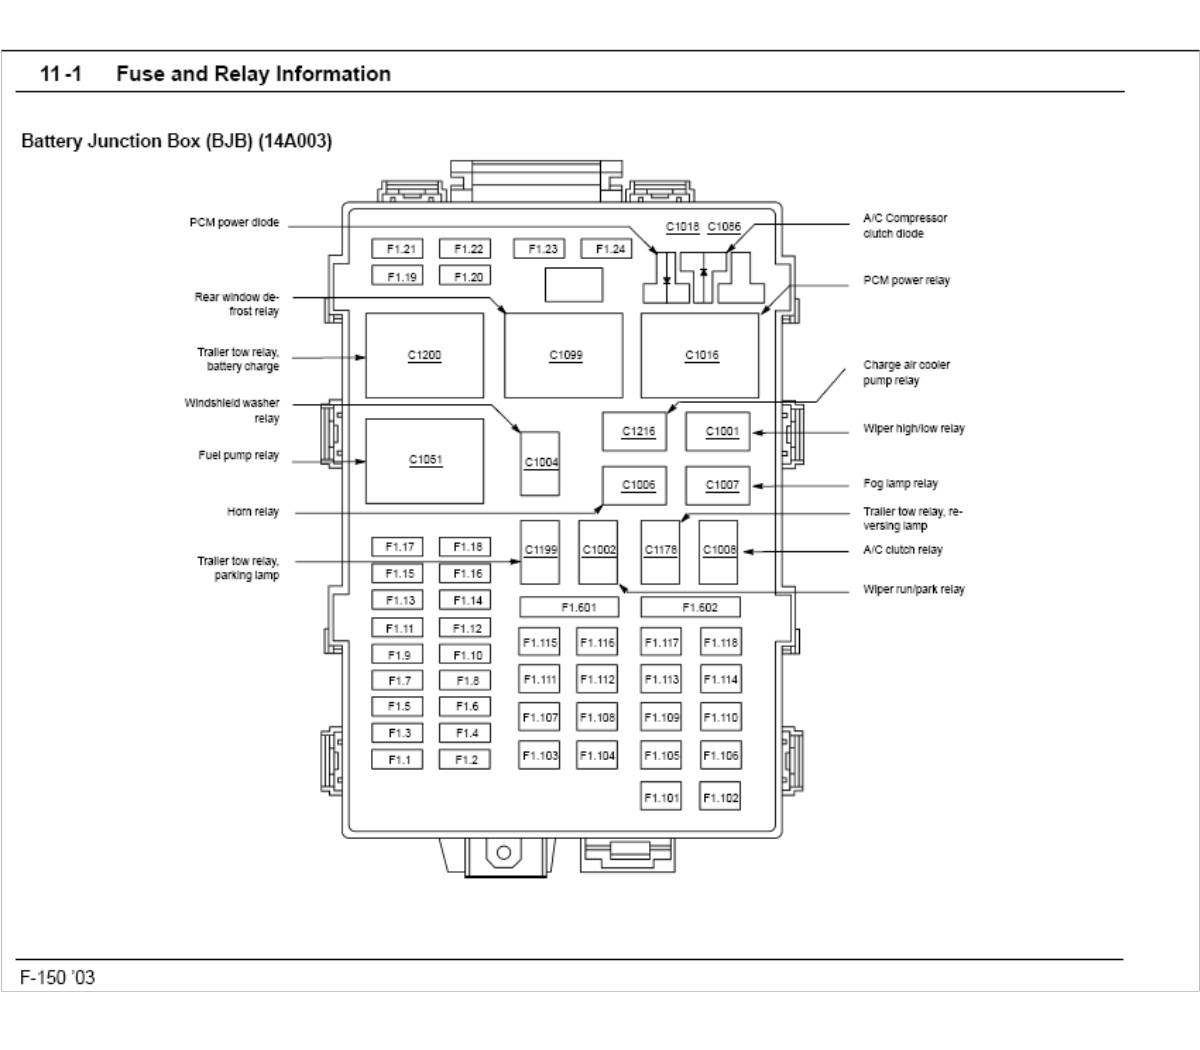 2003 ford f150 fuse box diagram - image details 2003 f150 fuse box fuse panel 2003 ford f150 fuse box diagram motogurumag